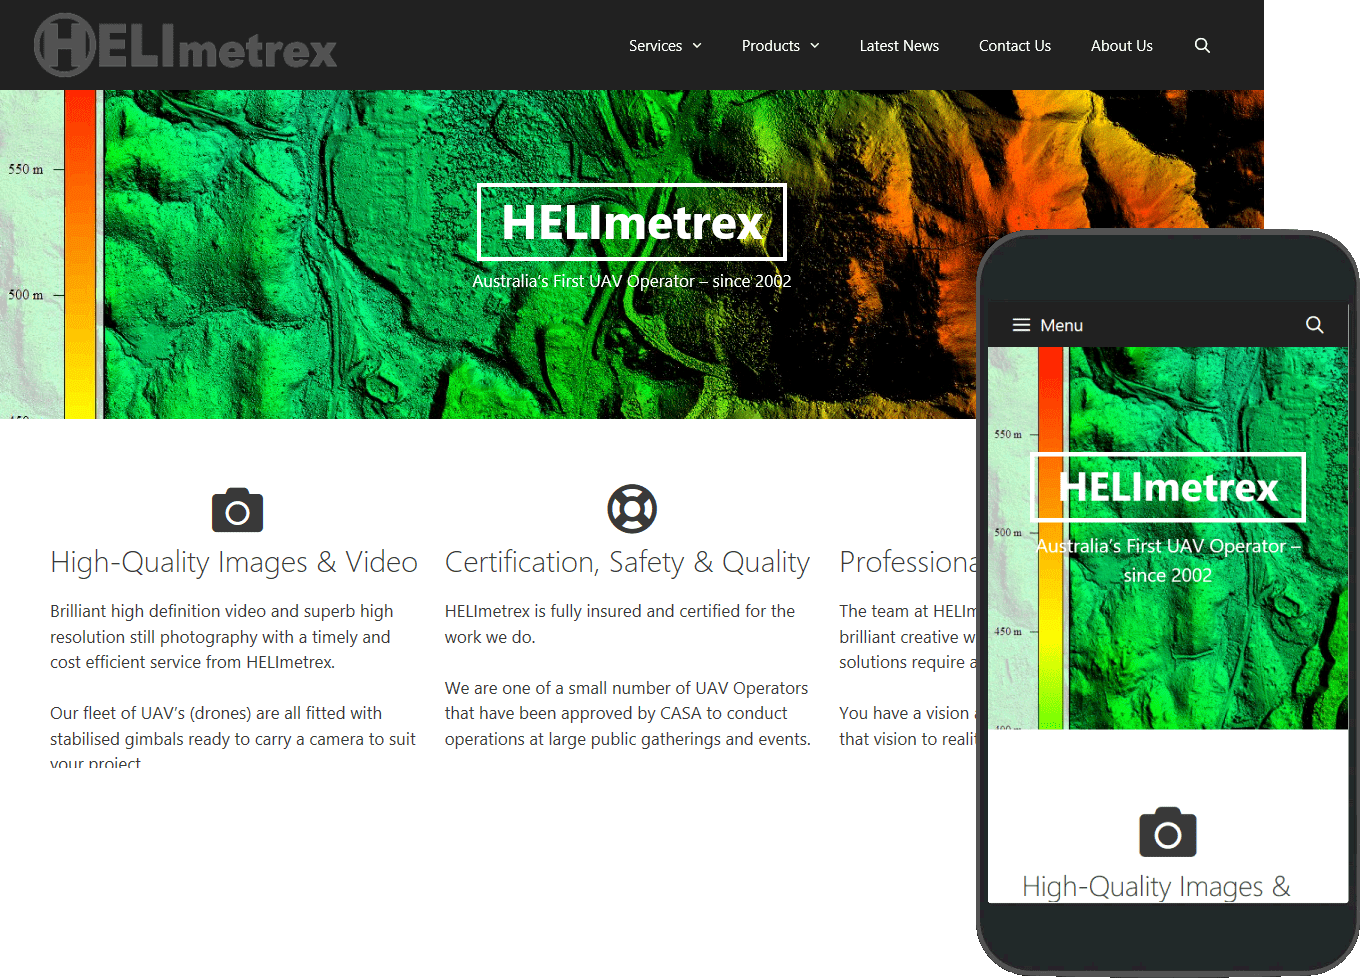 HELImetrex porfolio image, full web page and mobile view